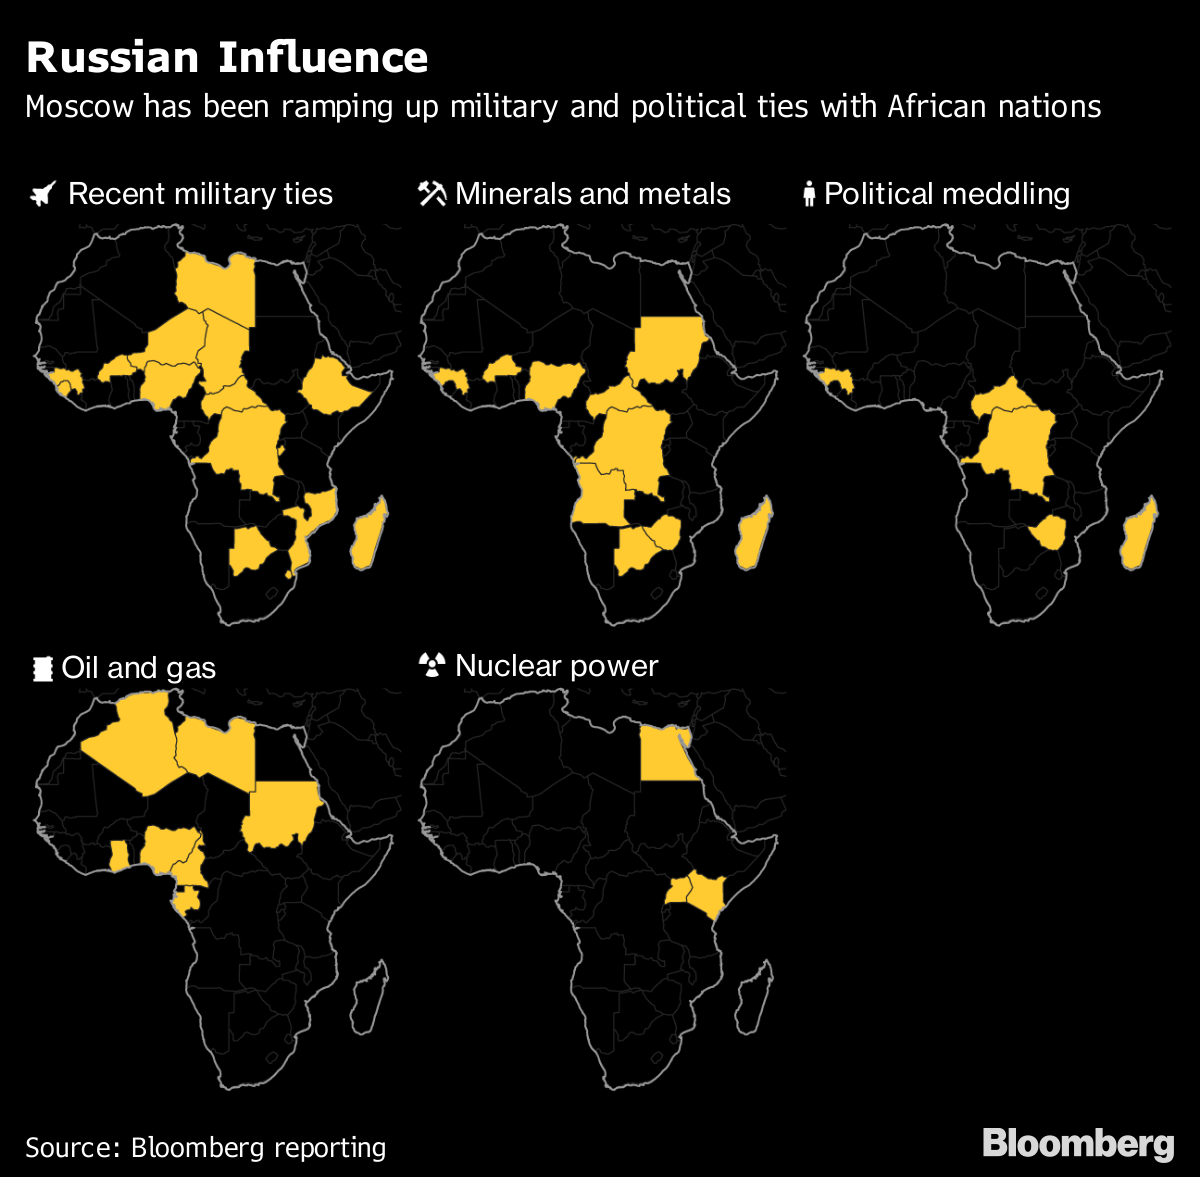 Putin `Chef' Yevgeny Prigozhin Is Now Meddling in Africa - Bloomberg